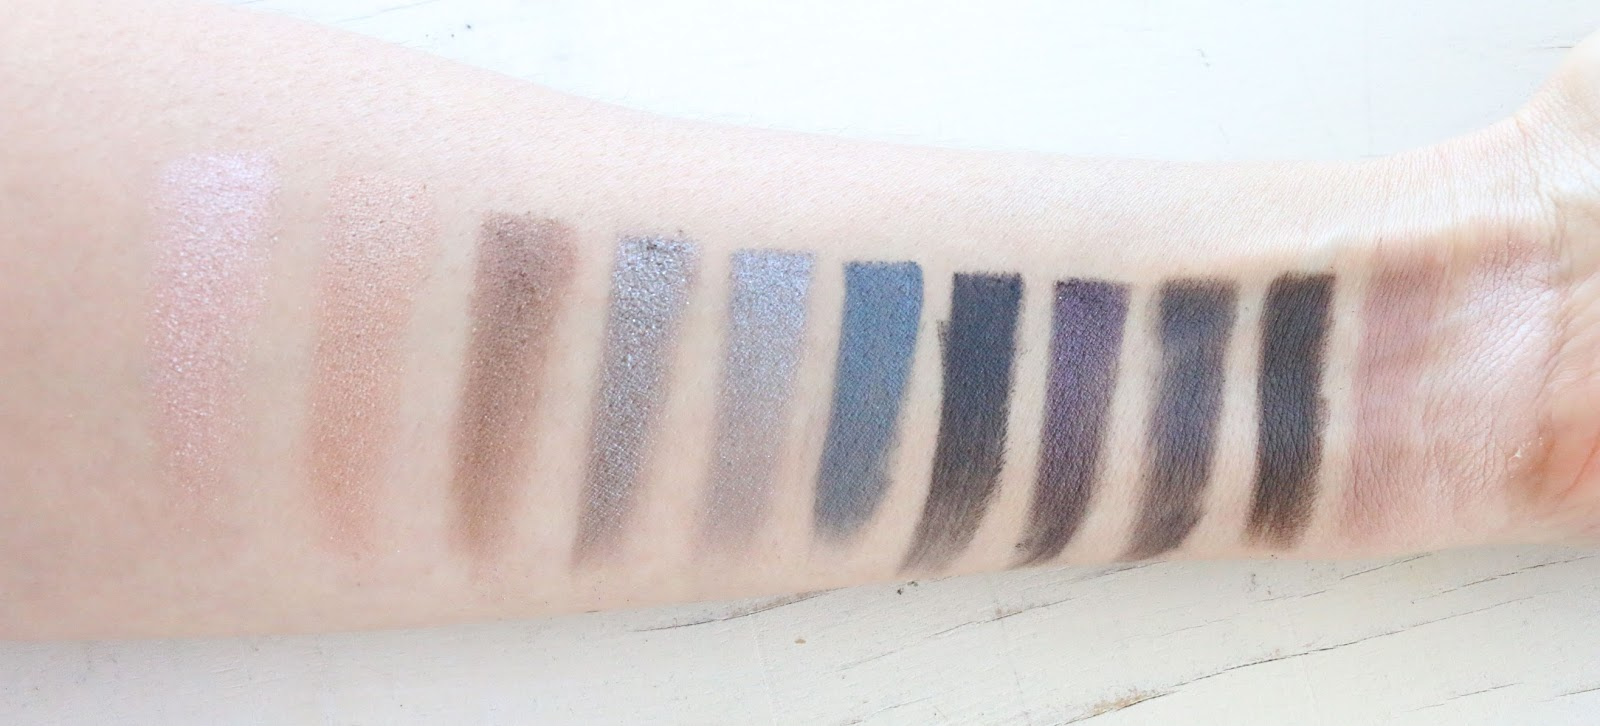 Naked Smoky Eyeshadow Palette by Urban Decay #13